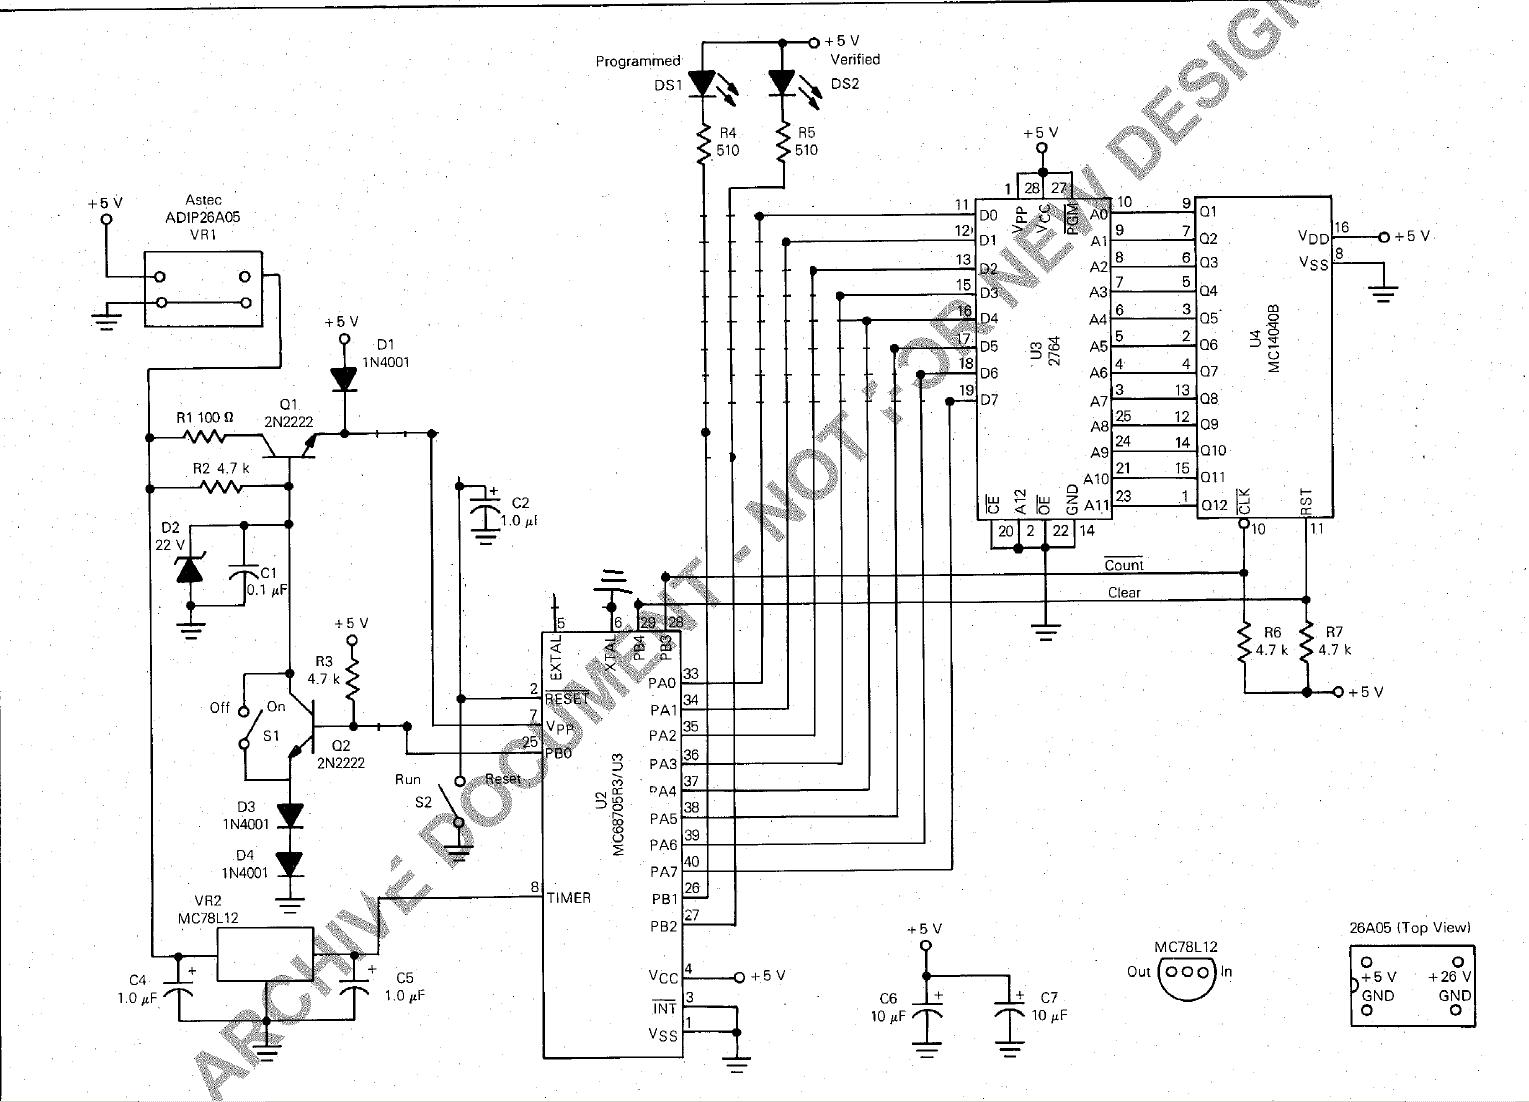 Microcontroller Programmer Circuit Page 3 Circuits Gt Cable Tv Amplifier L37020 Nextgr Mc68705